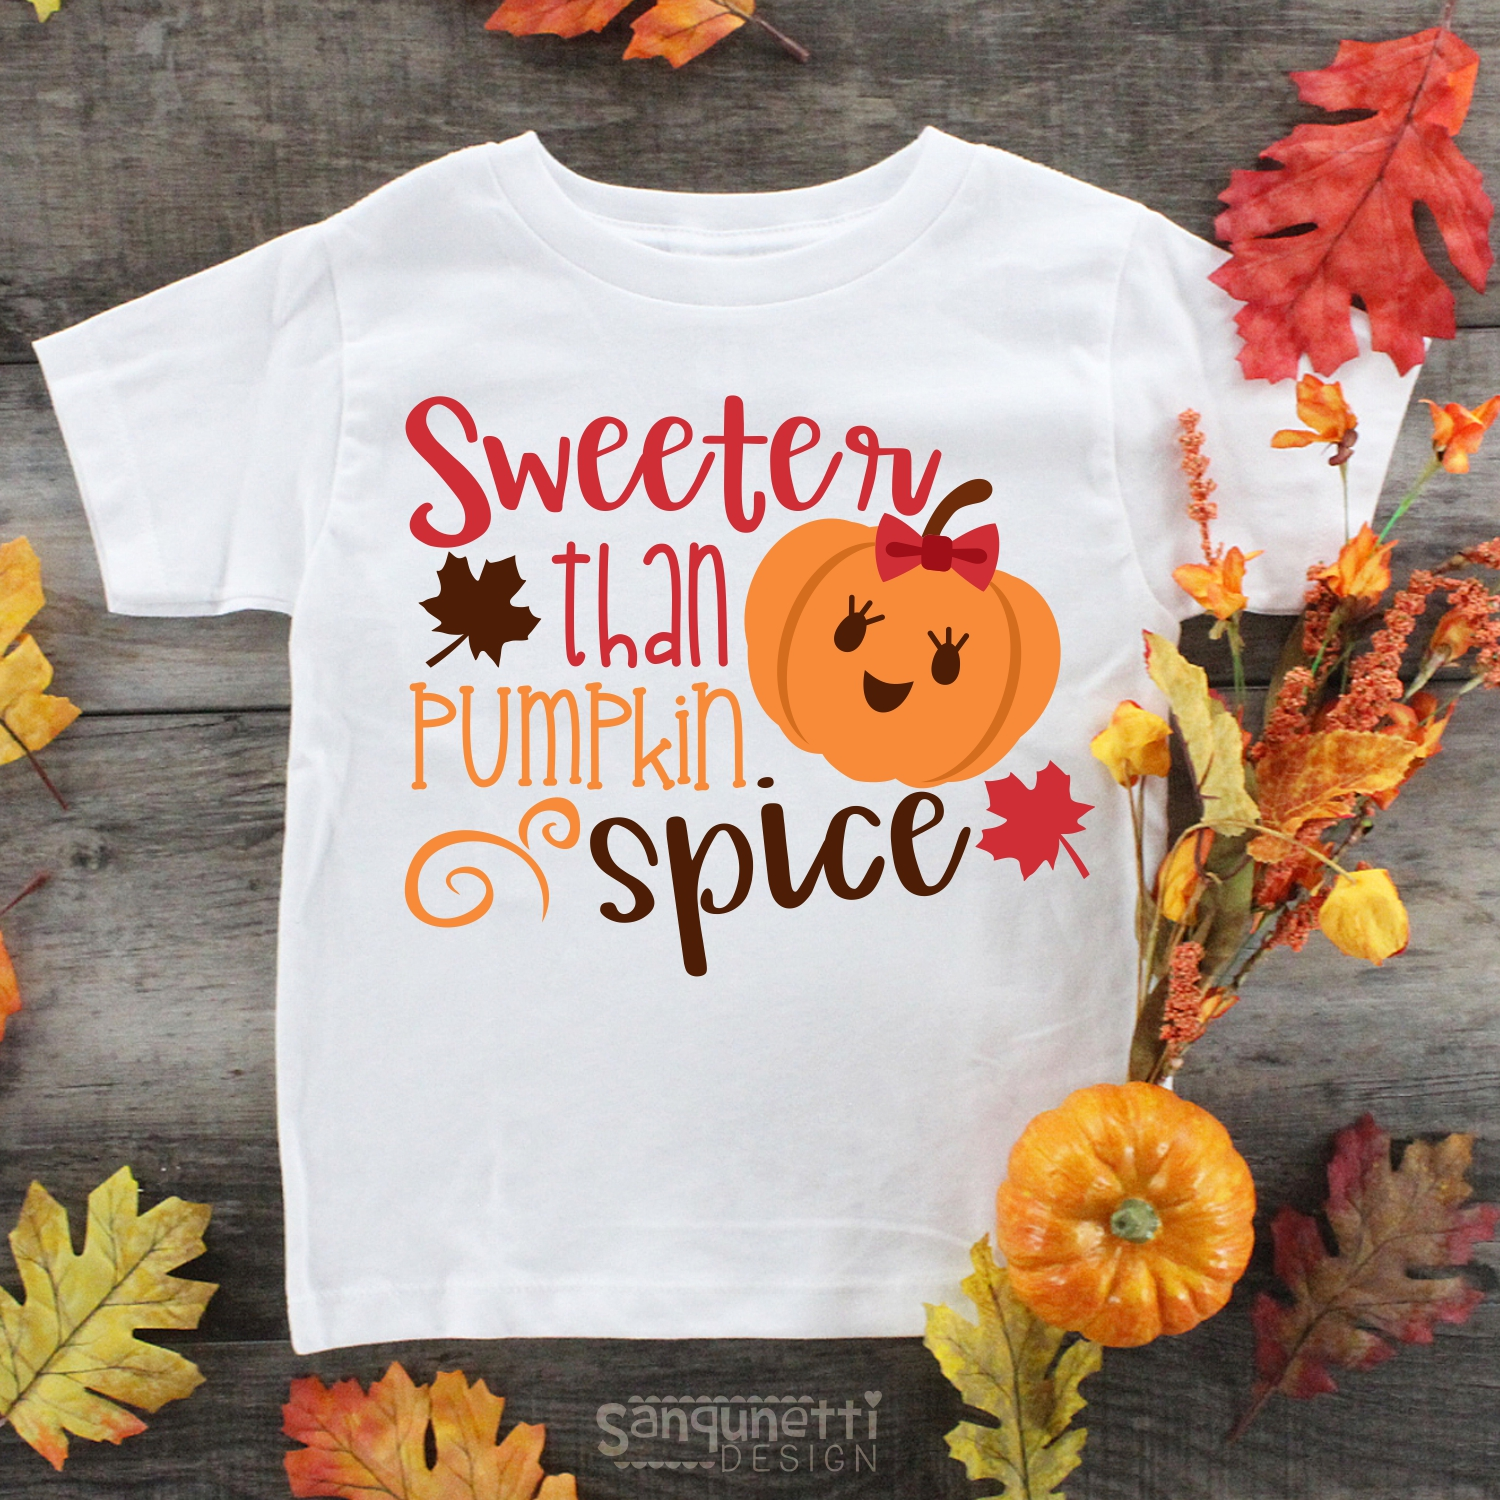 Fall SVG Bundle 1, autumn cut files example image 6